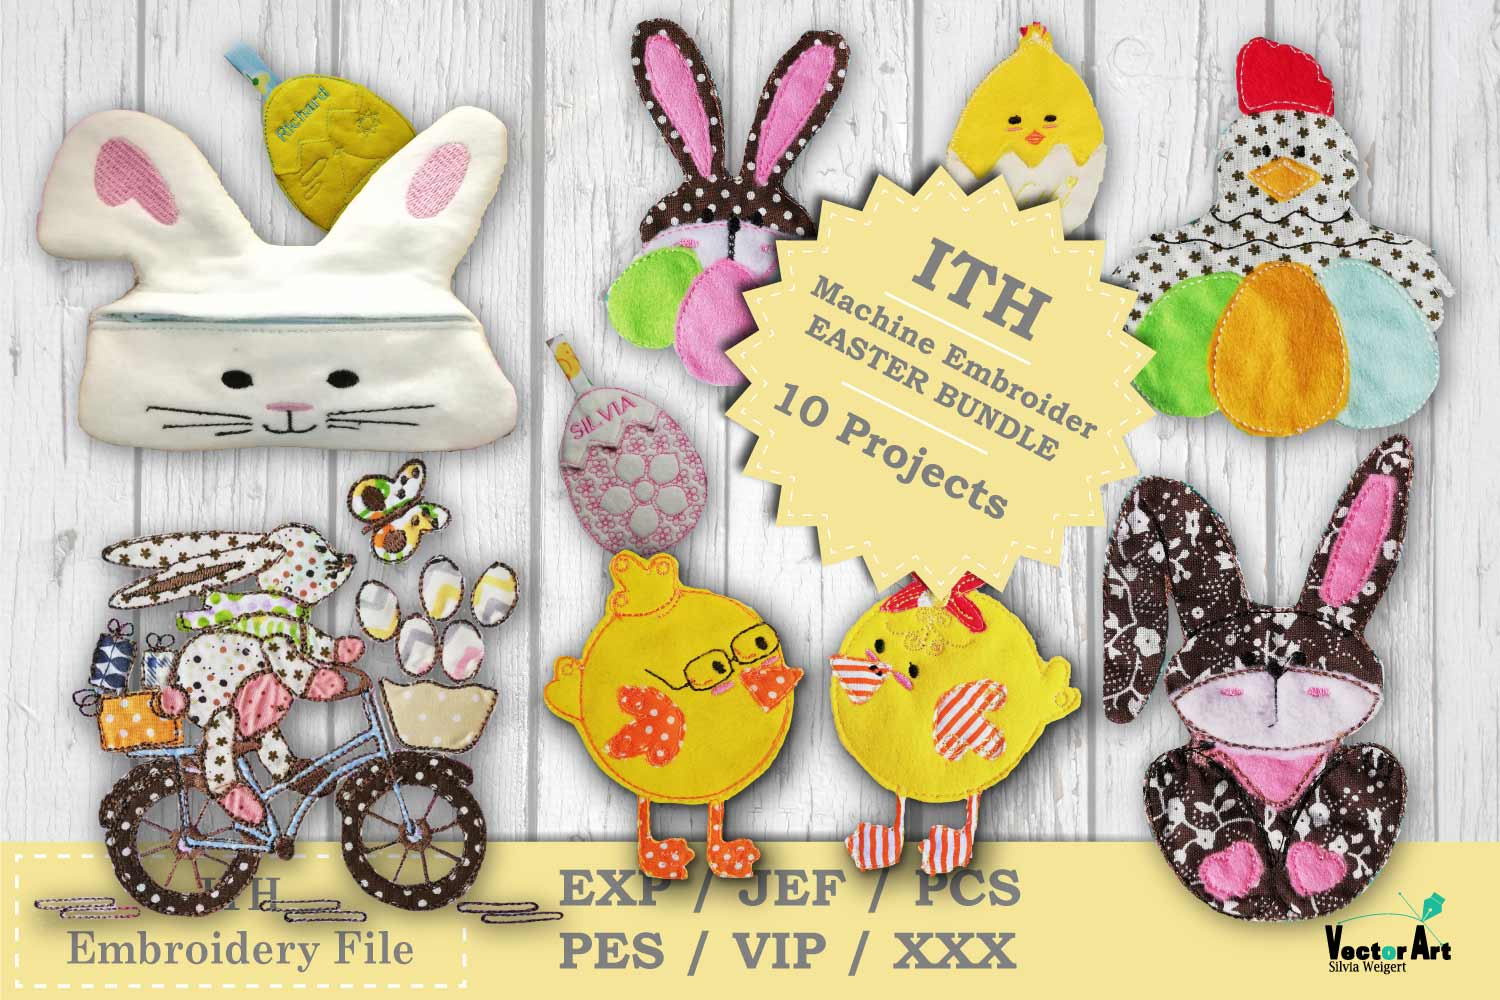 ITH Easter Bundle - Machine Embroidery Files - 10 Projects example image 1